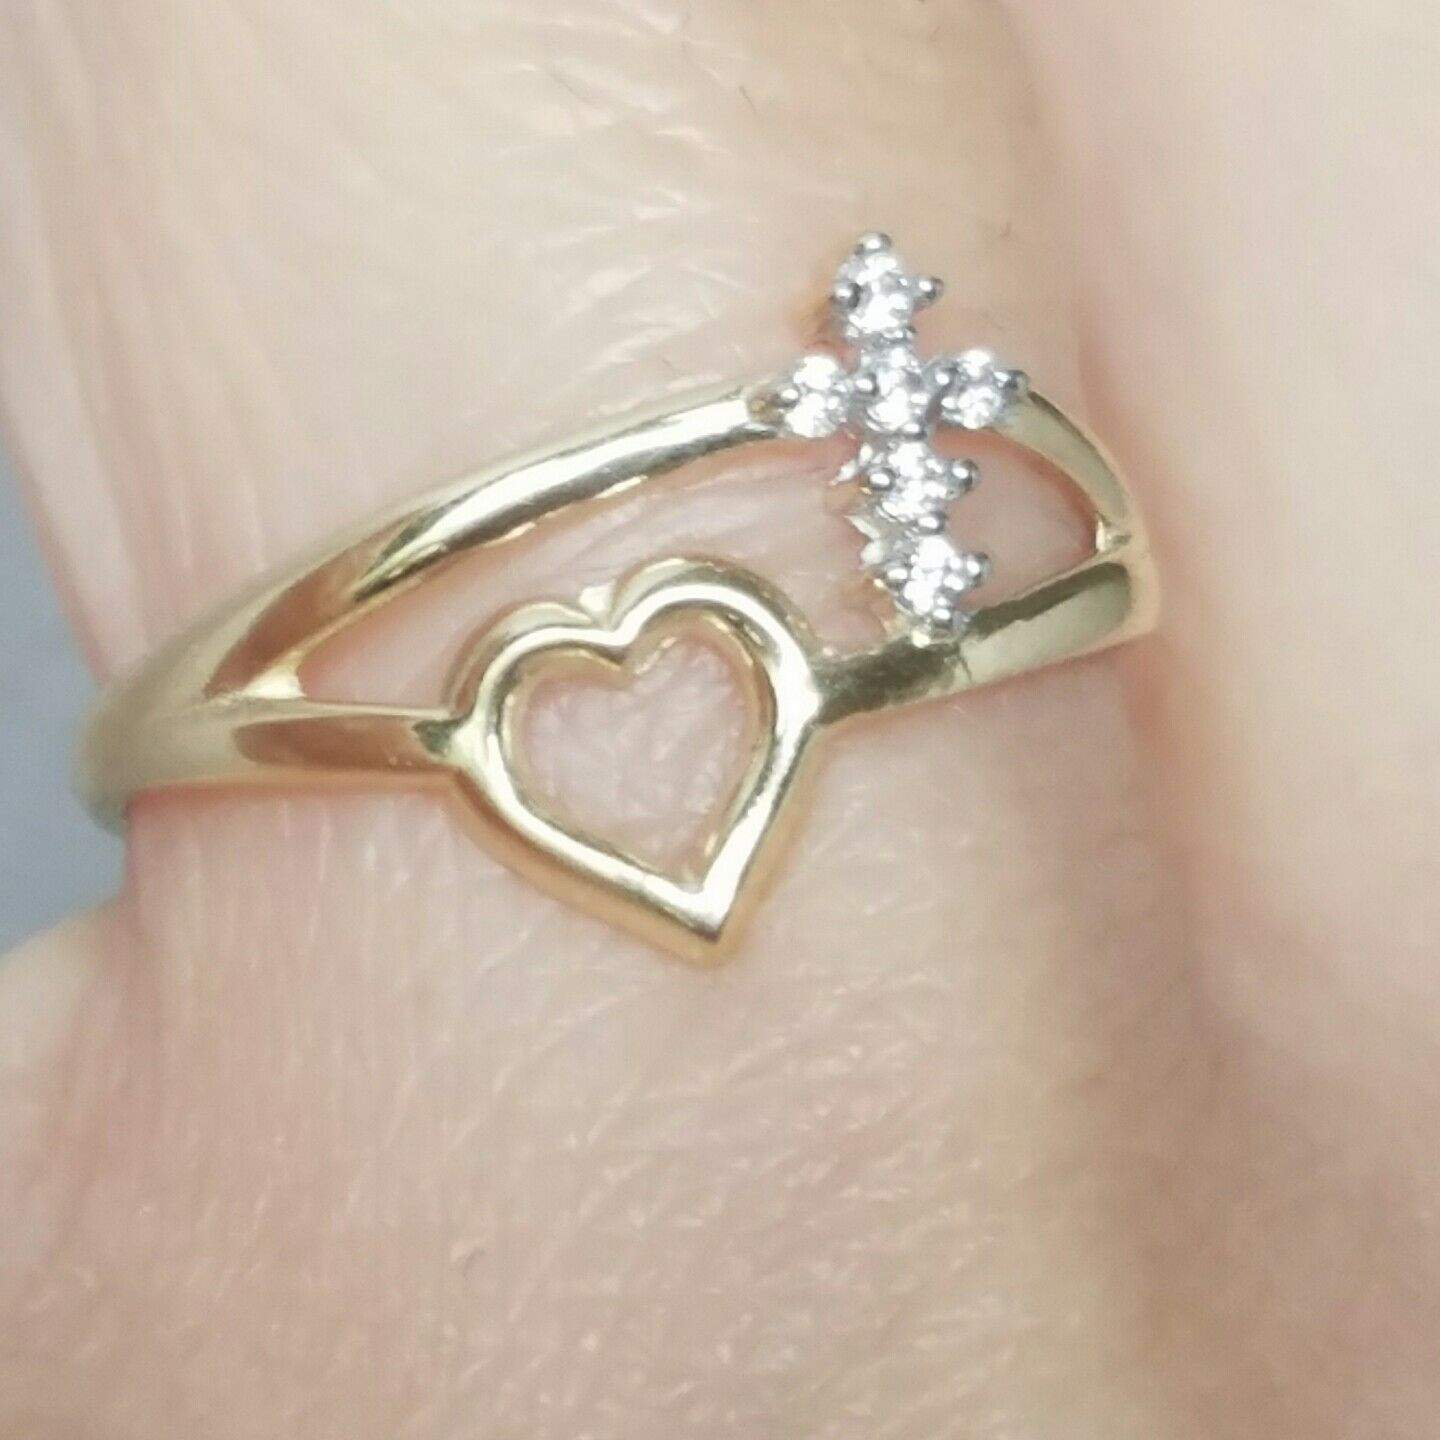 .15 carat Woman's solid 10k yellow gold gold Cross heart Ring S 6.5